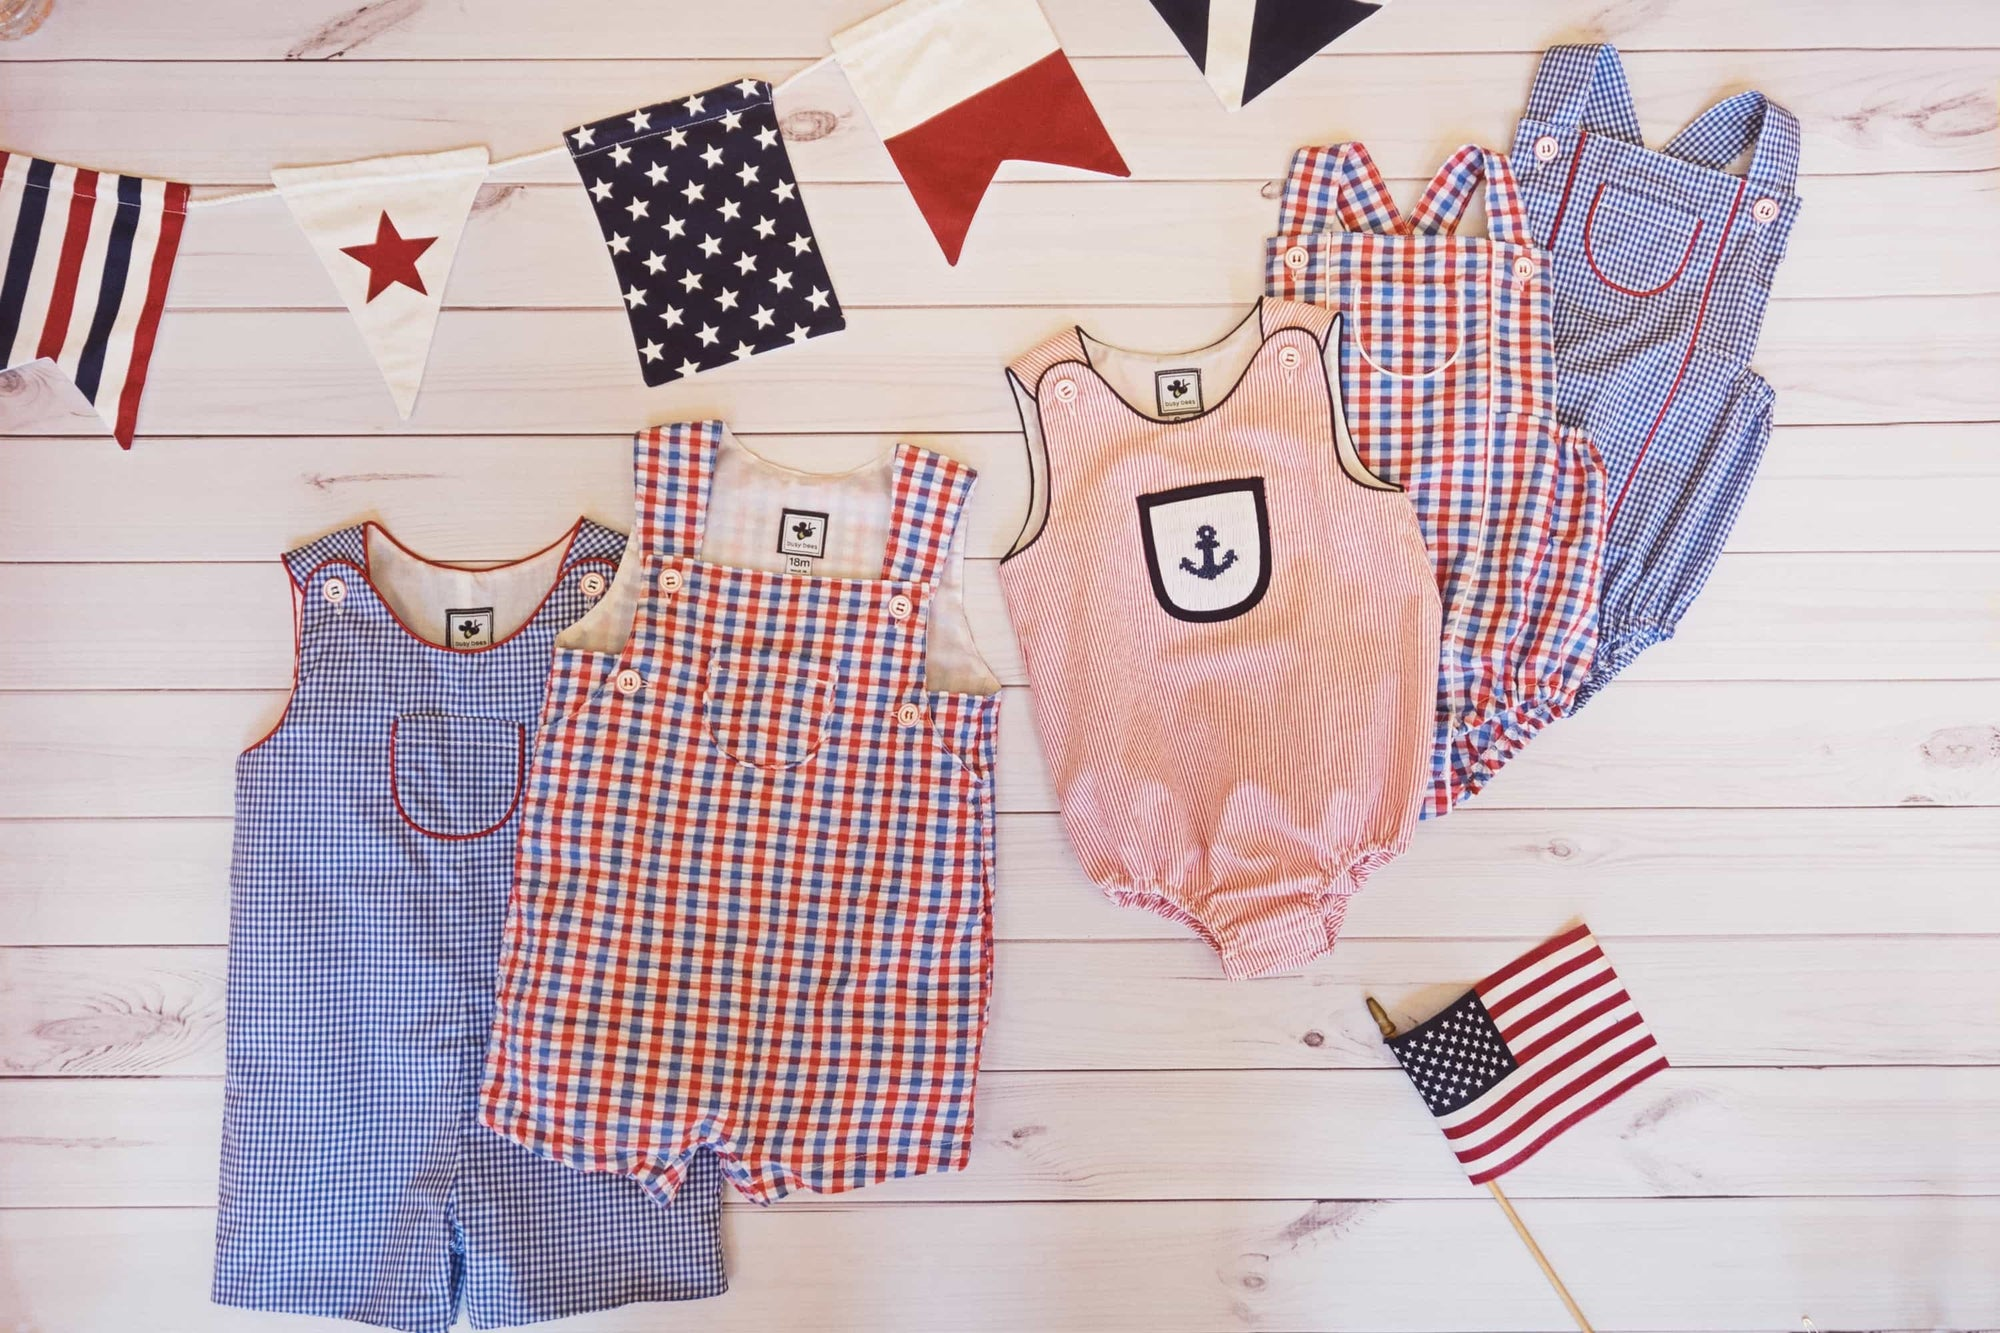 c923b3ce0 Busy Bees - American Prep Style for Girls and Boys 3 months to 16 years